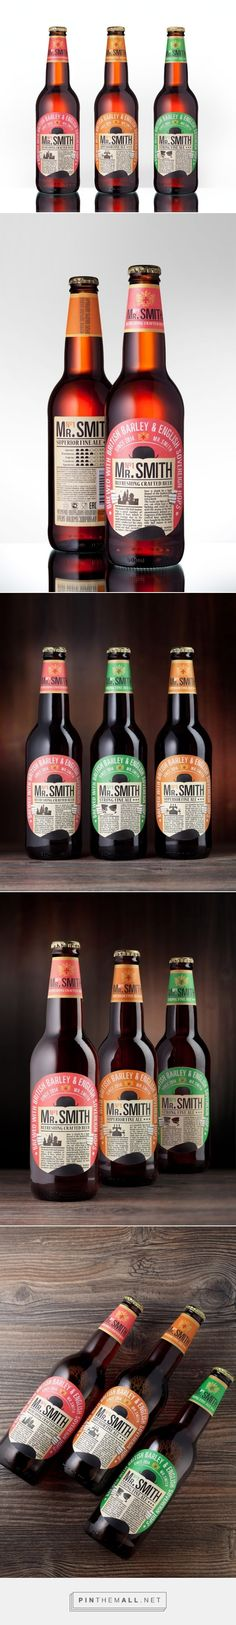 Mr. Smith #beer #packaging designed by Viewpoint - http://www.packagingoftheworld.com/2015/07/mr-smith.html - created via http://pinthemall.net